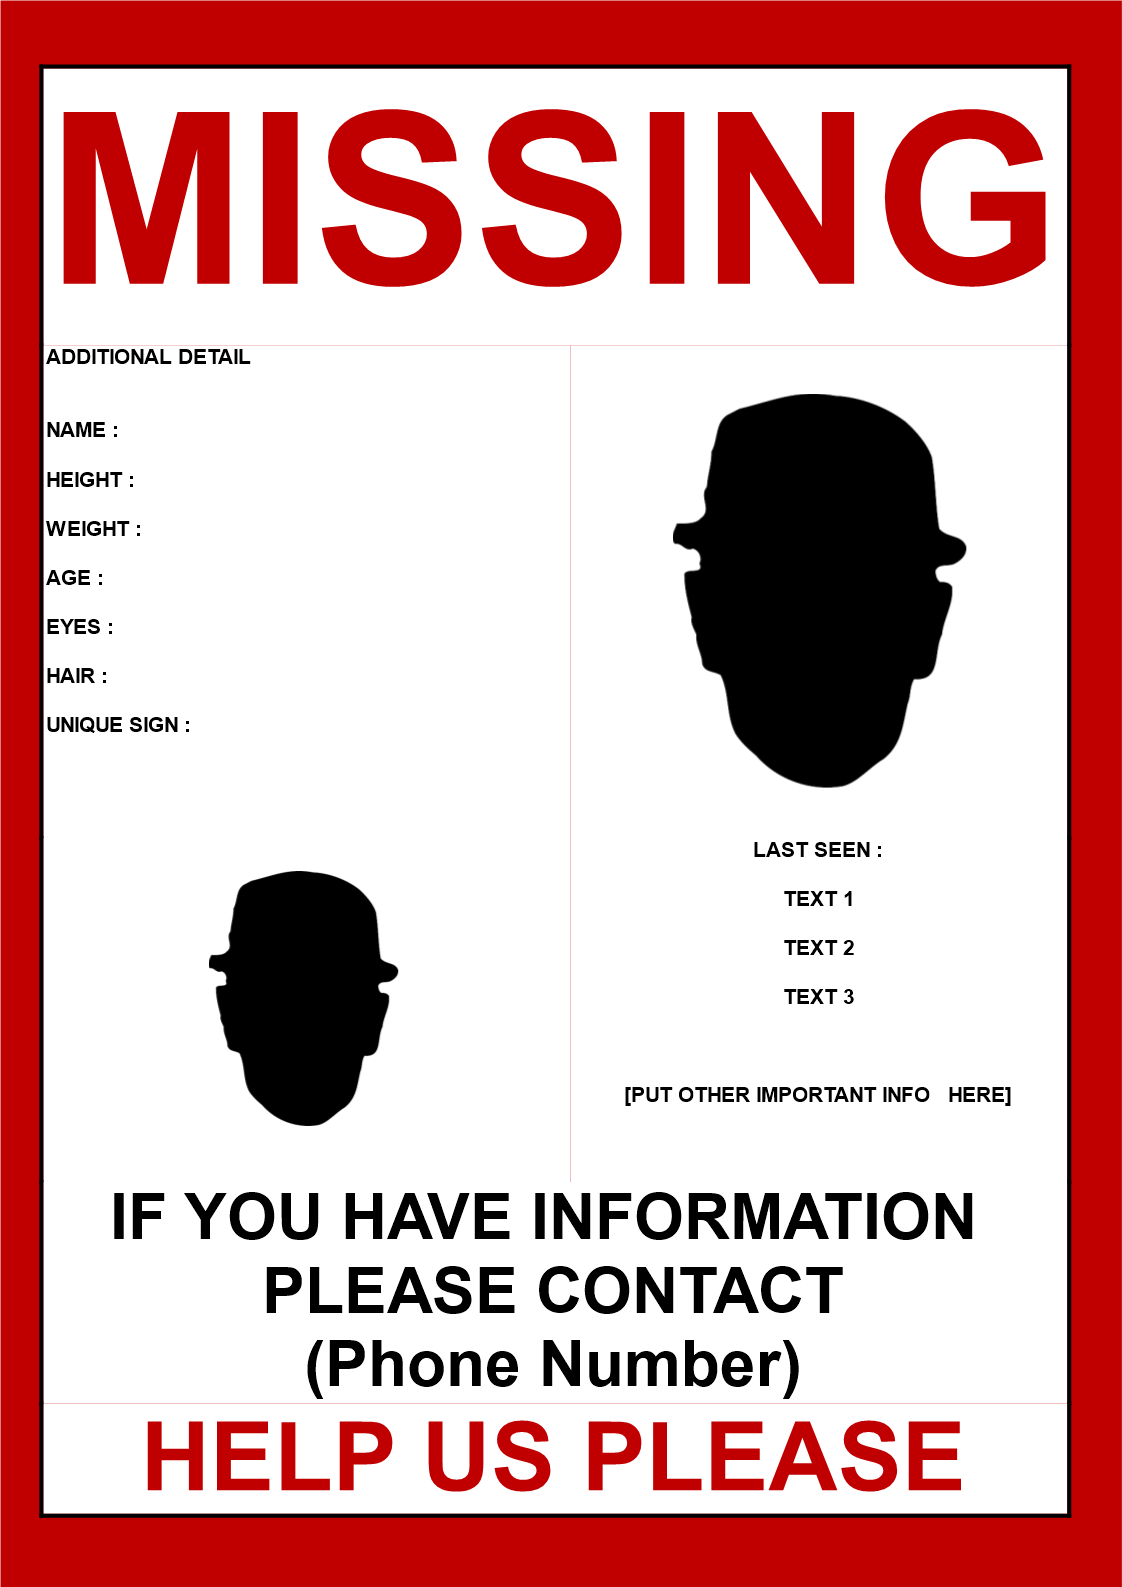 Missing Person Template Amusing Missing Flyer Template 15 Wanted ...